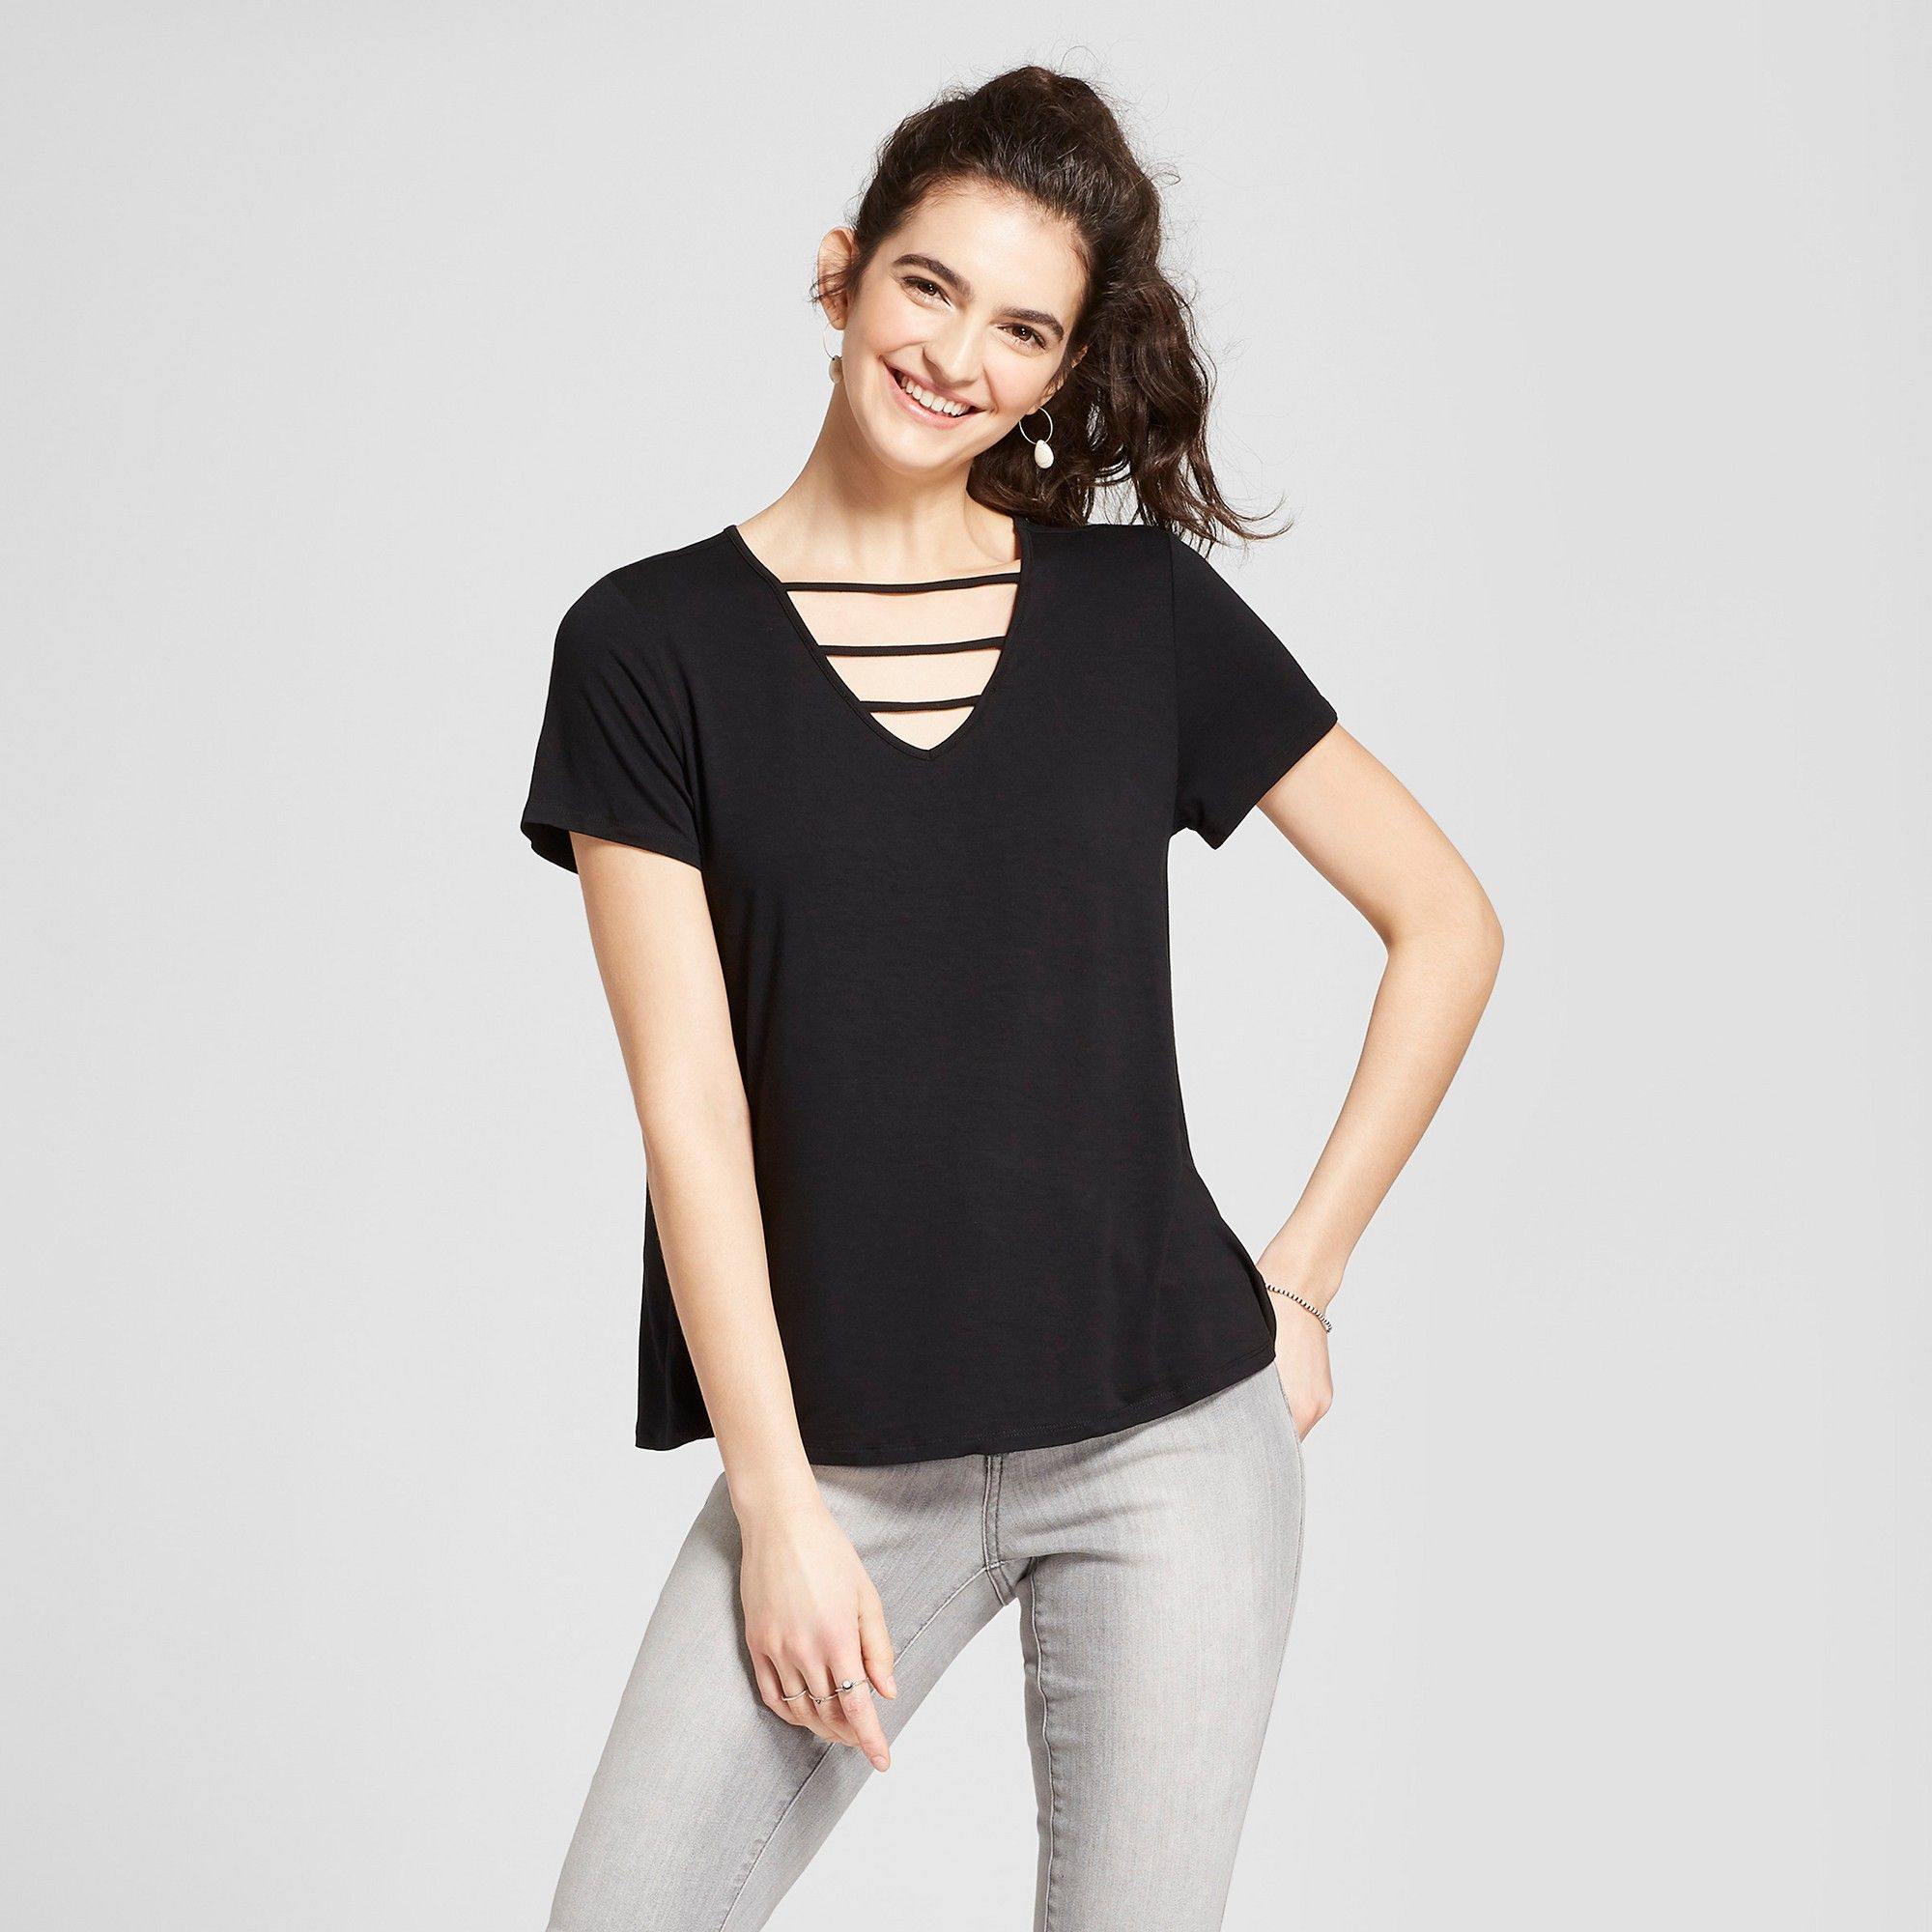 c1e5a017 Women's Short Sleeve T-Shirt with Neck Detail - Mossimo Supply Co. Black M